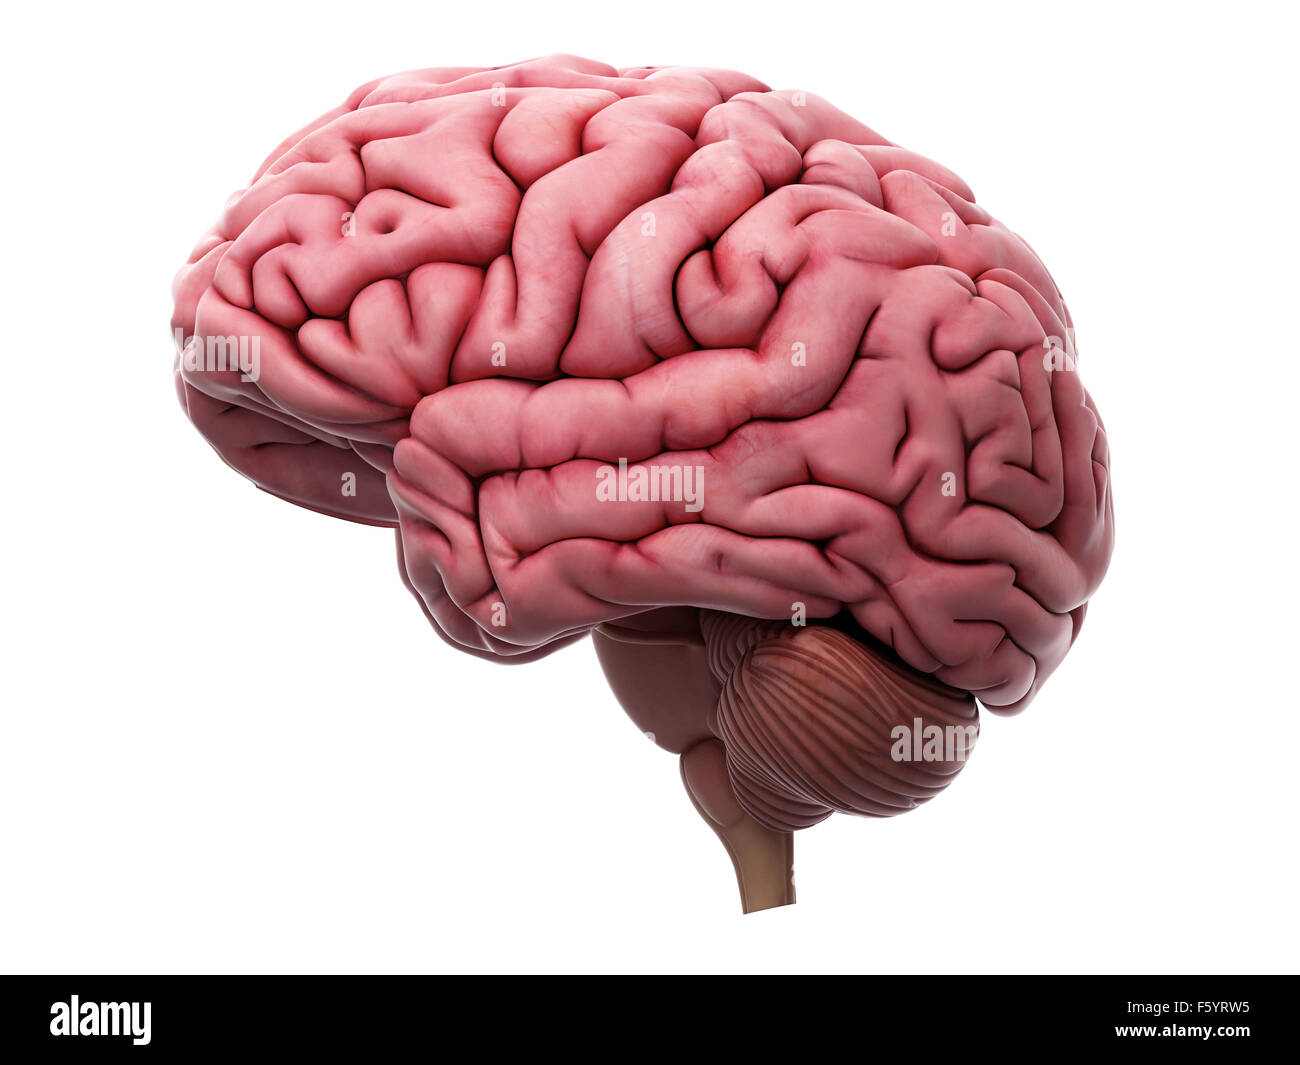 medically accurate illustration of the brain Stock Photo